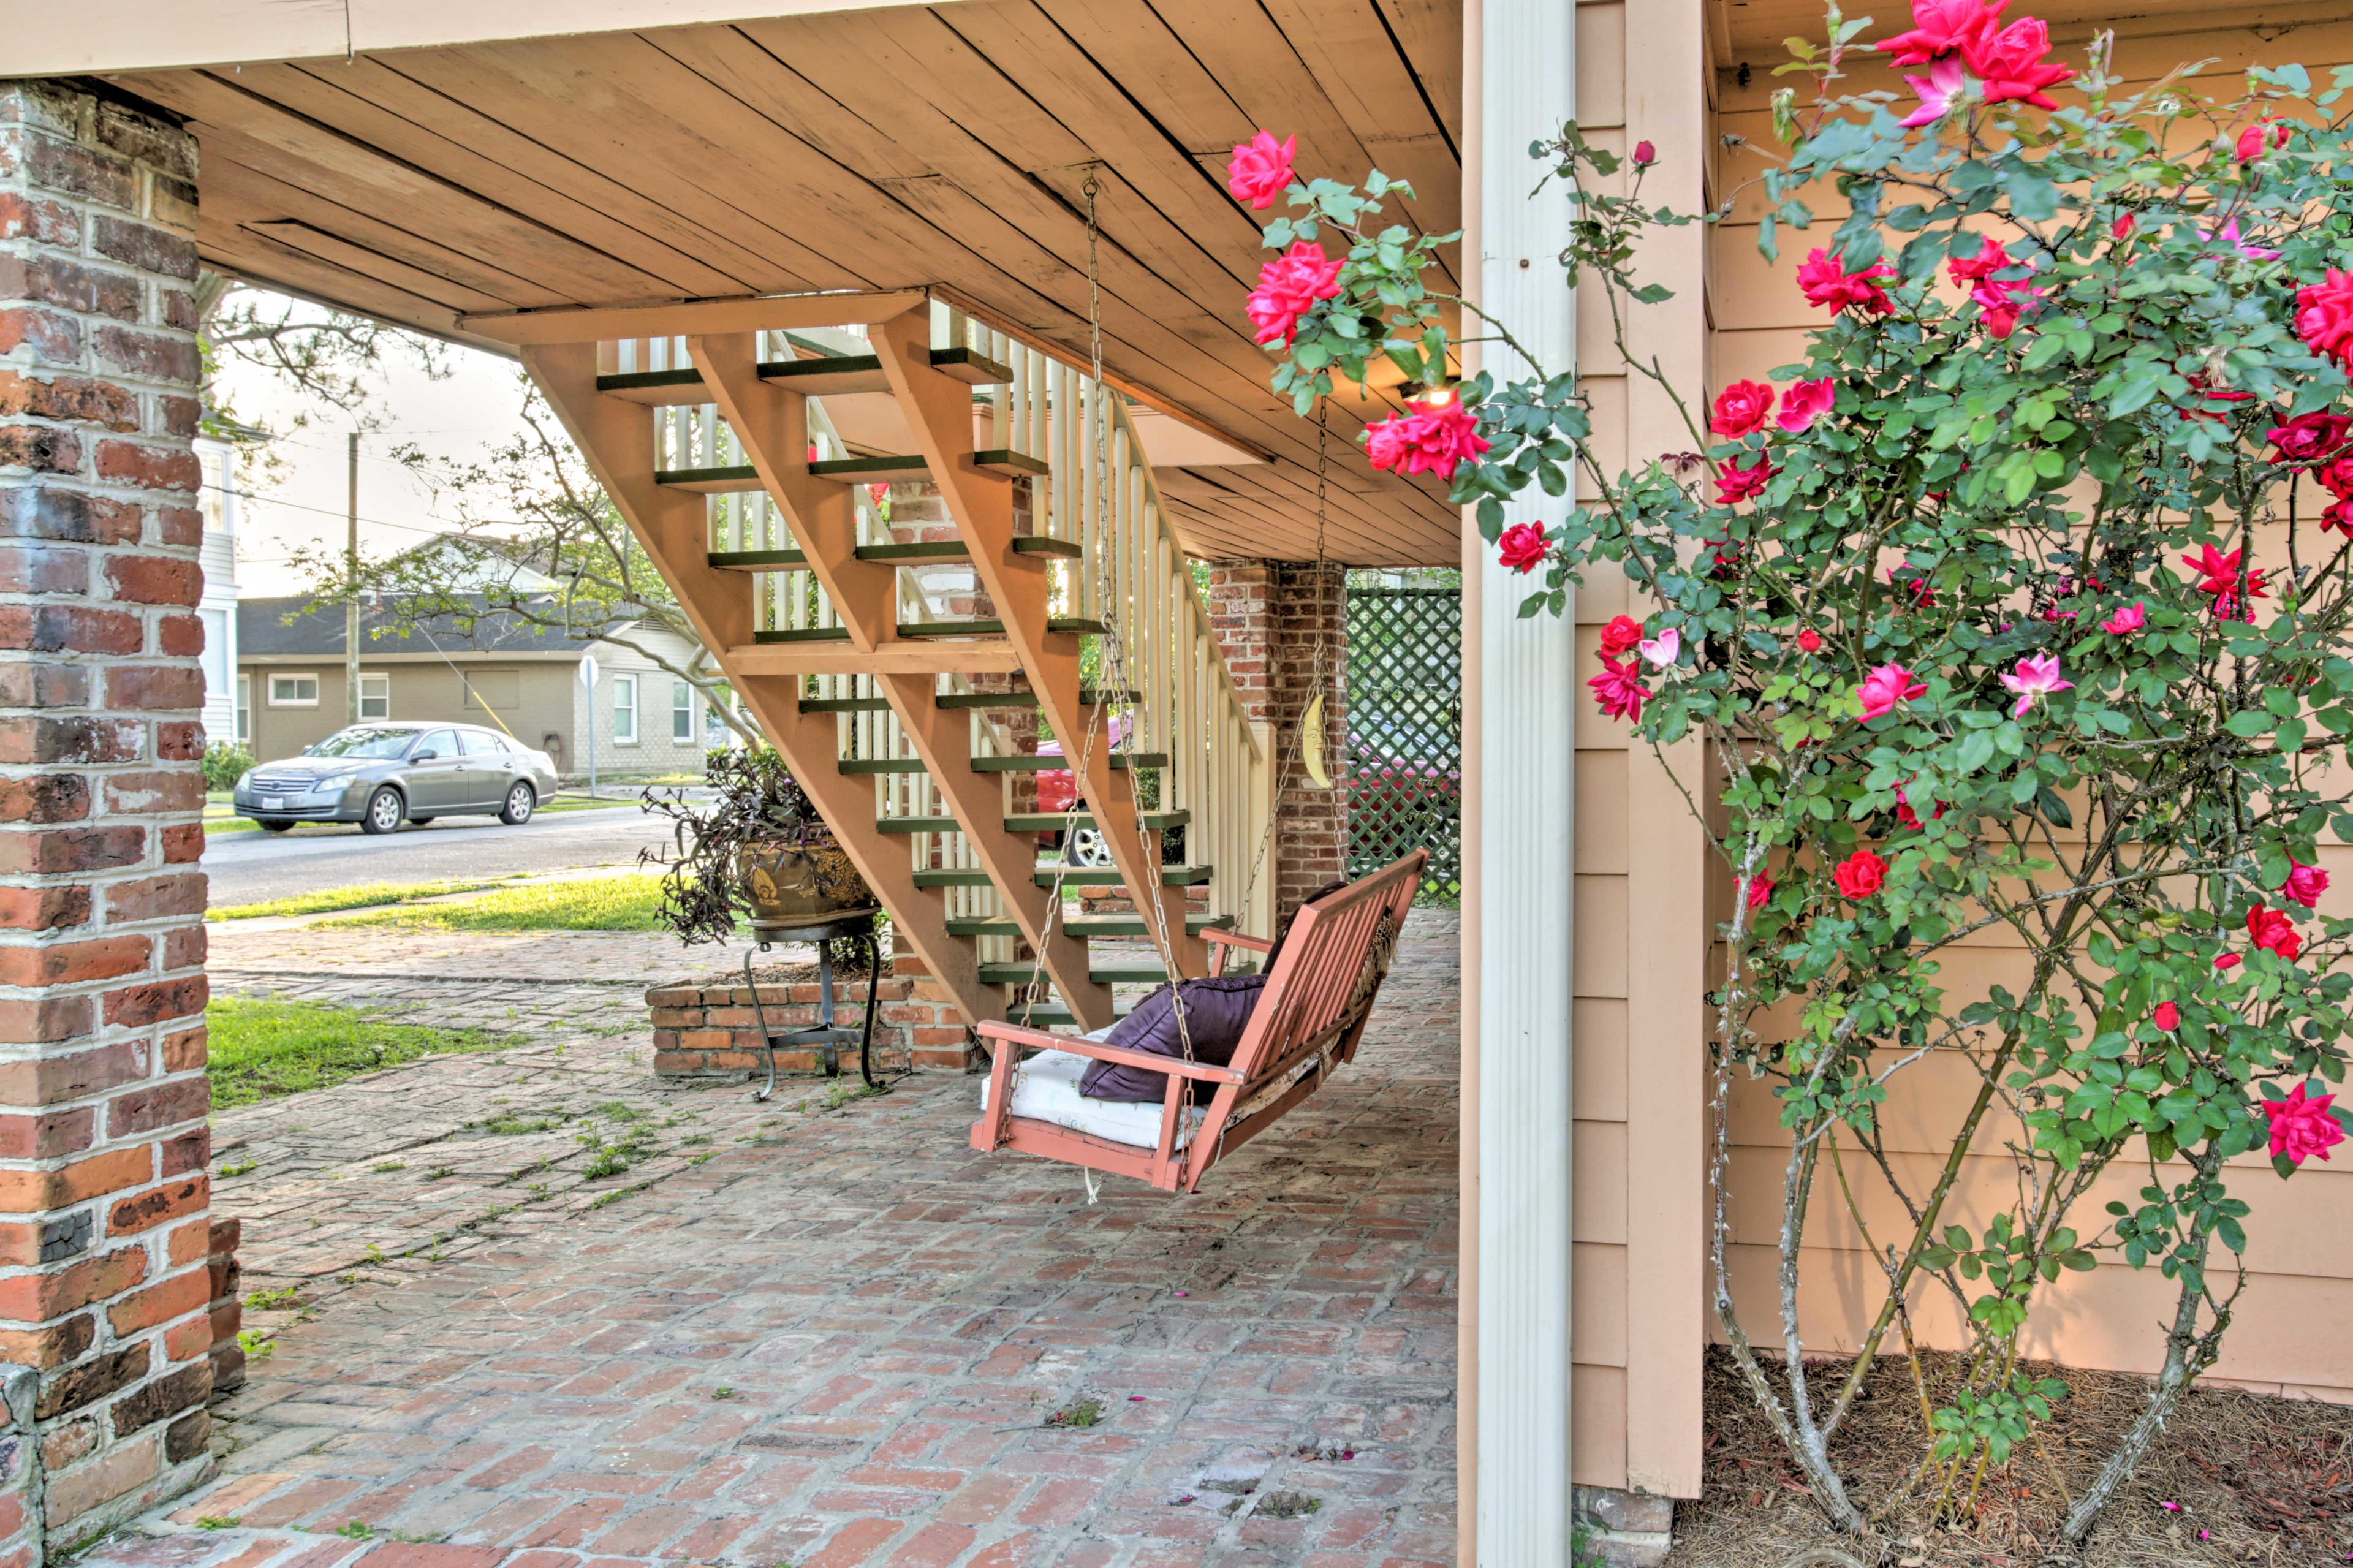 The chair swing in front of the house is a wonderful reading nook.